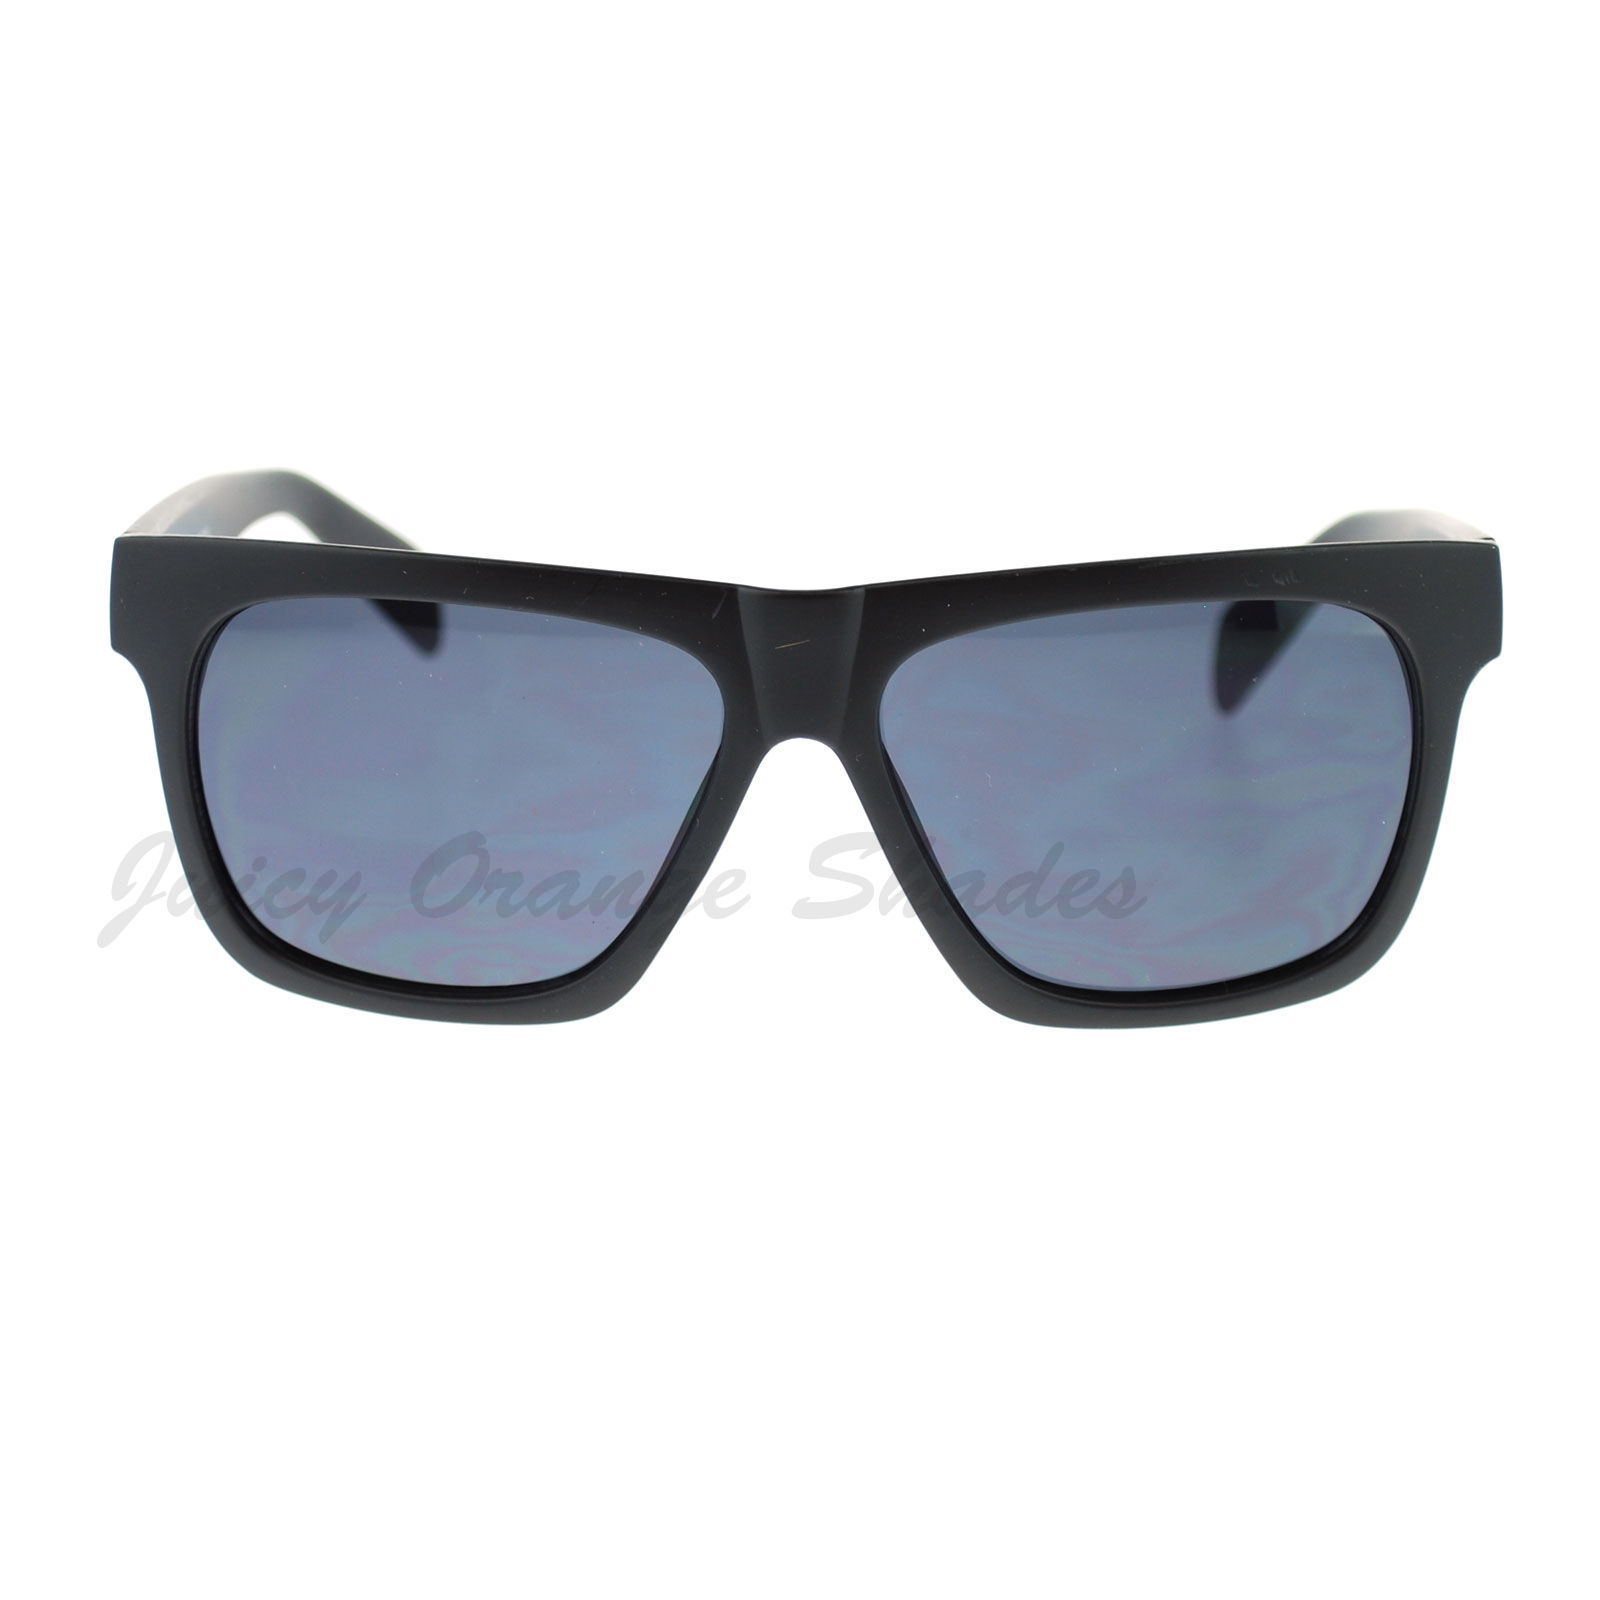 KUSH Matte Black Square Frame Sunglasses Unisex Fashion